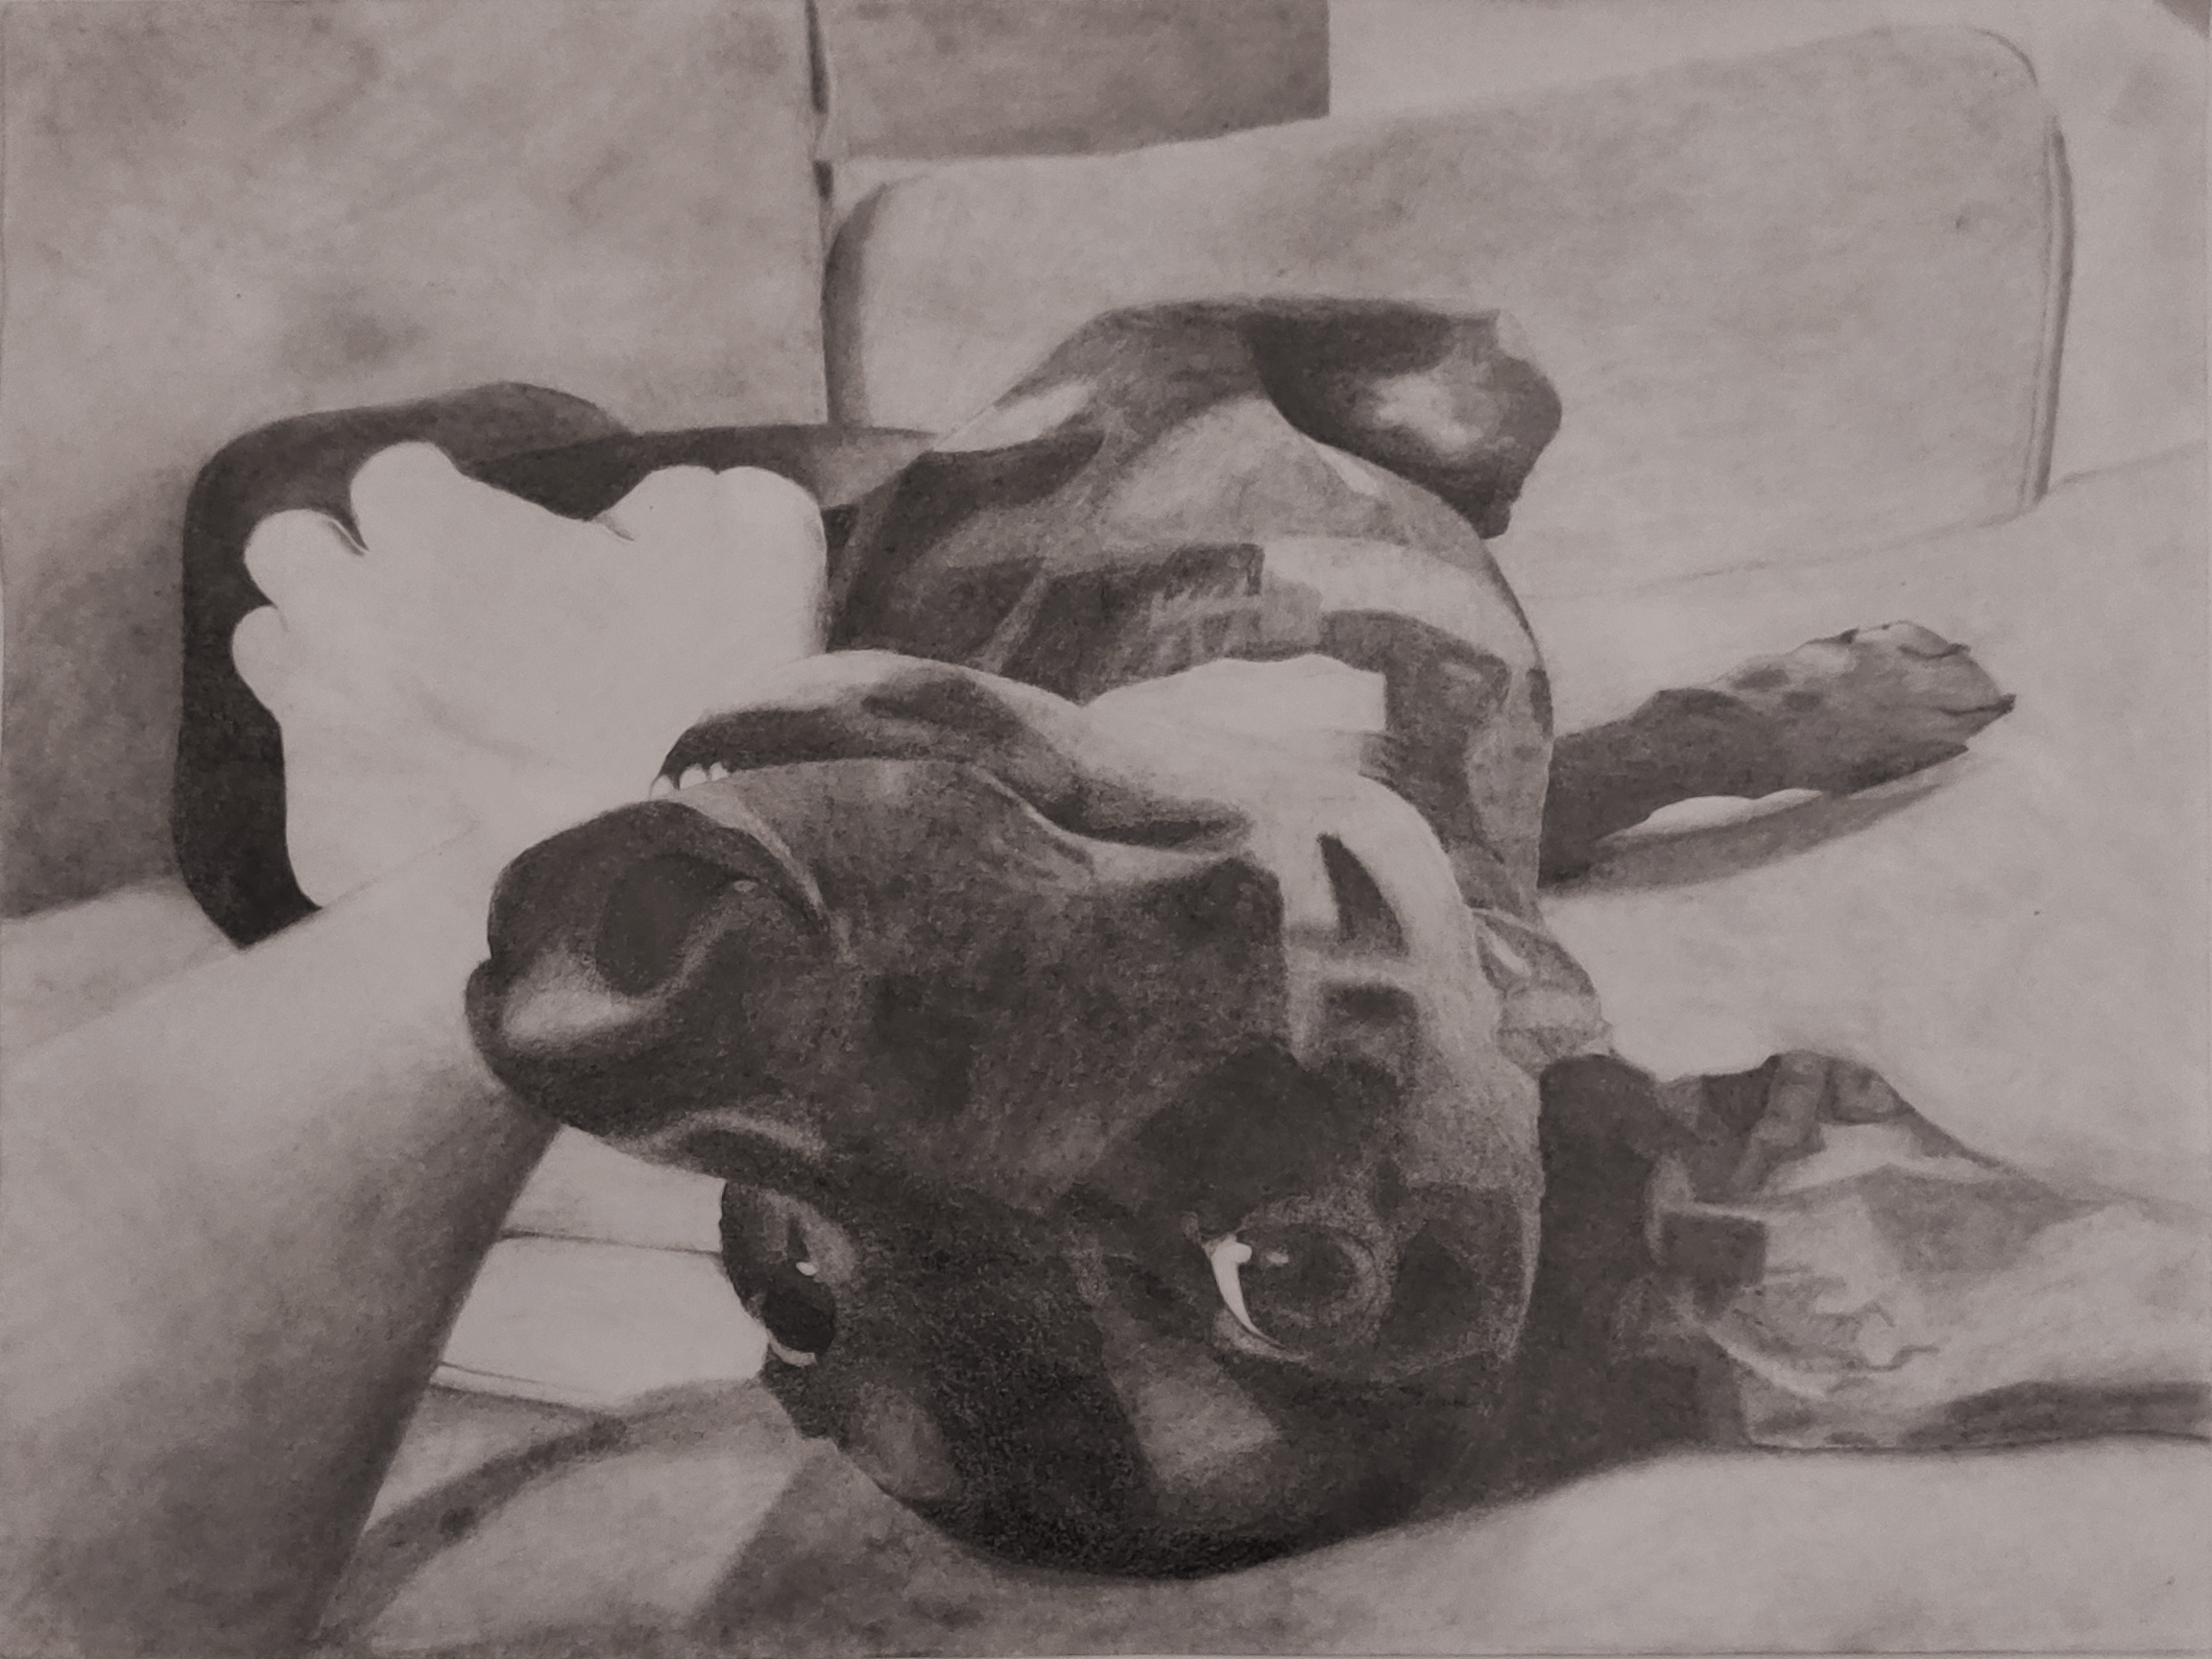 A pencil drawing of Khiron, my puppy, on a poster-sized piece of paper.